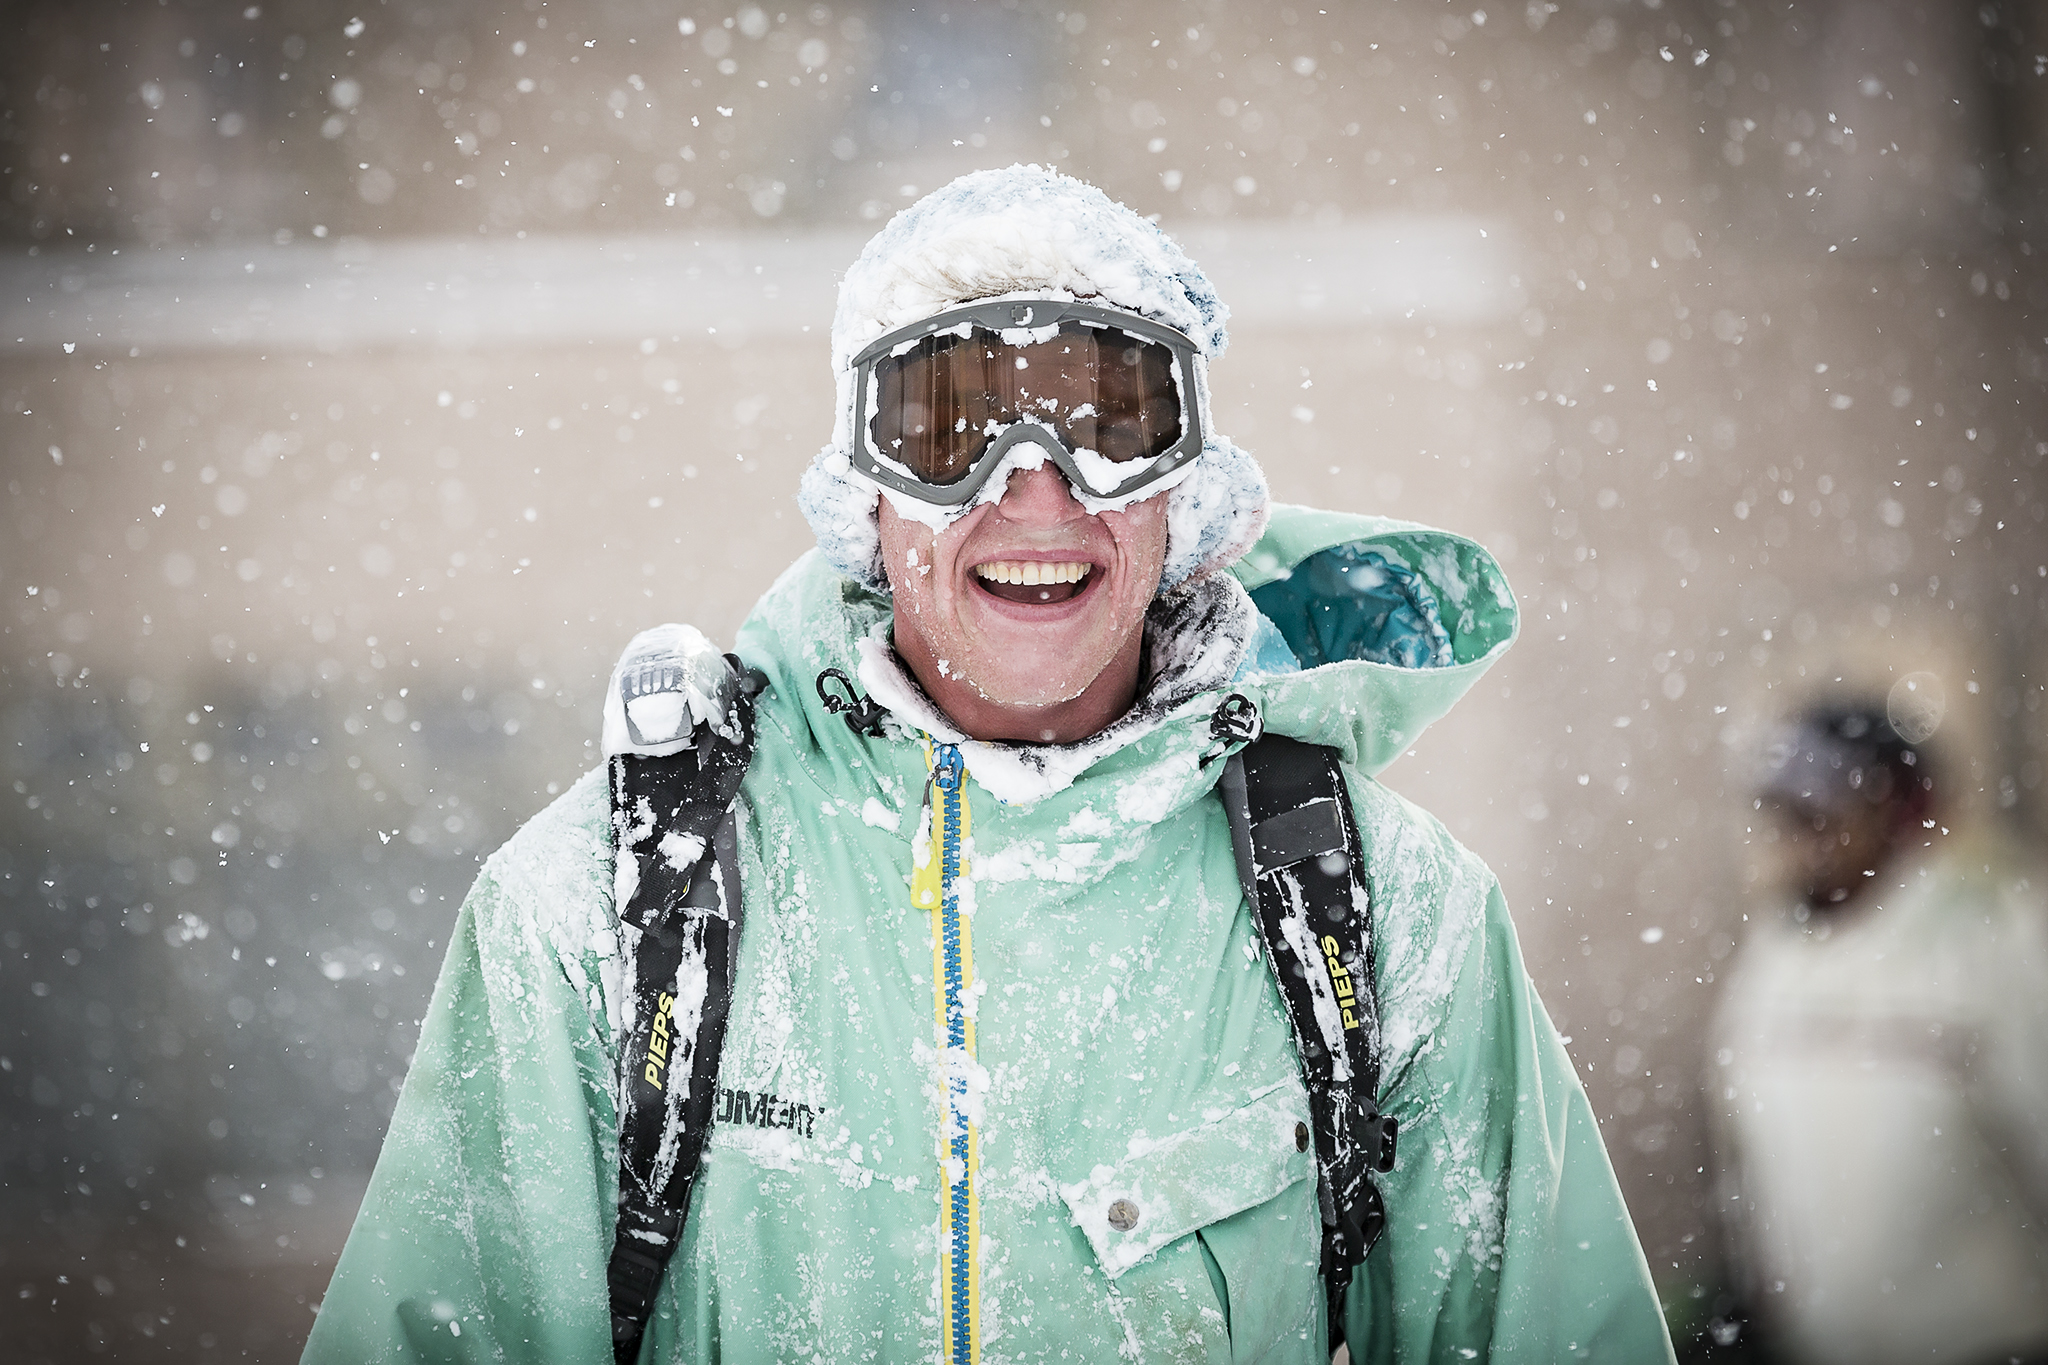 A happy snowboarder covered in powder snow in Niseko